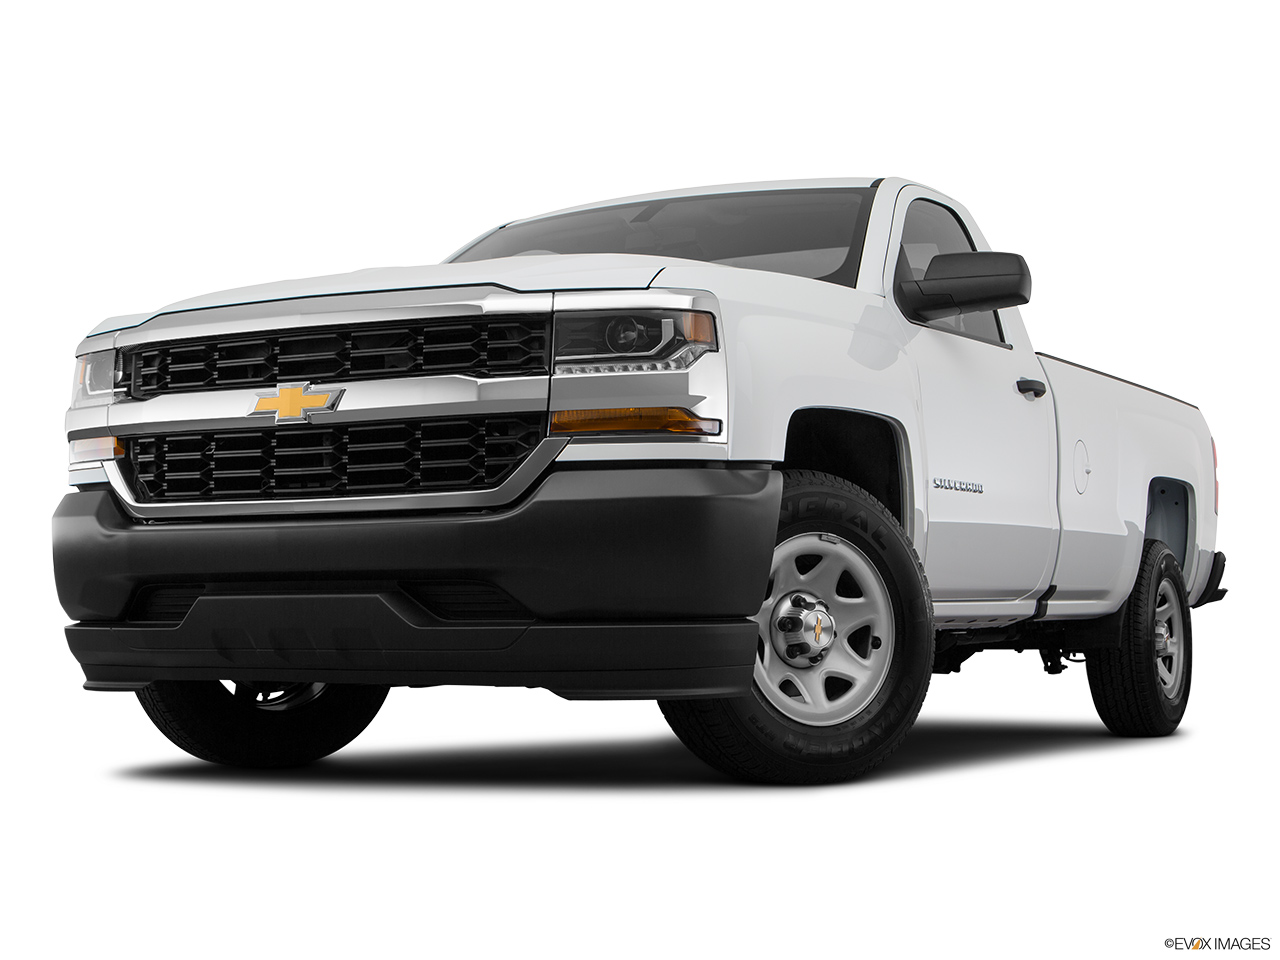 Chevrolet Silverado 2018 1500 Base, Saudi Arabia, Front angle view, low wide perspective.